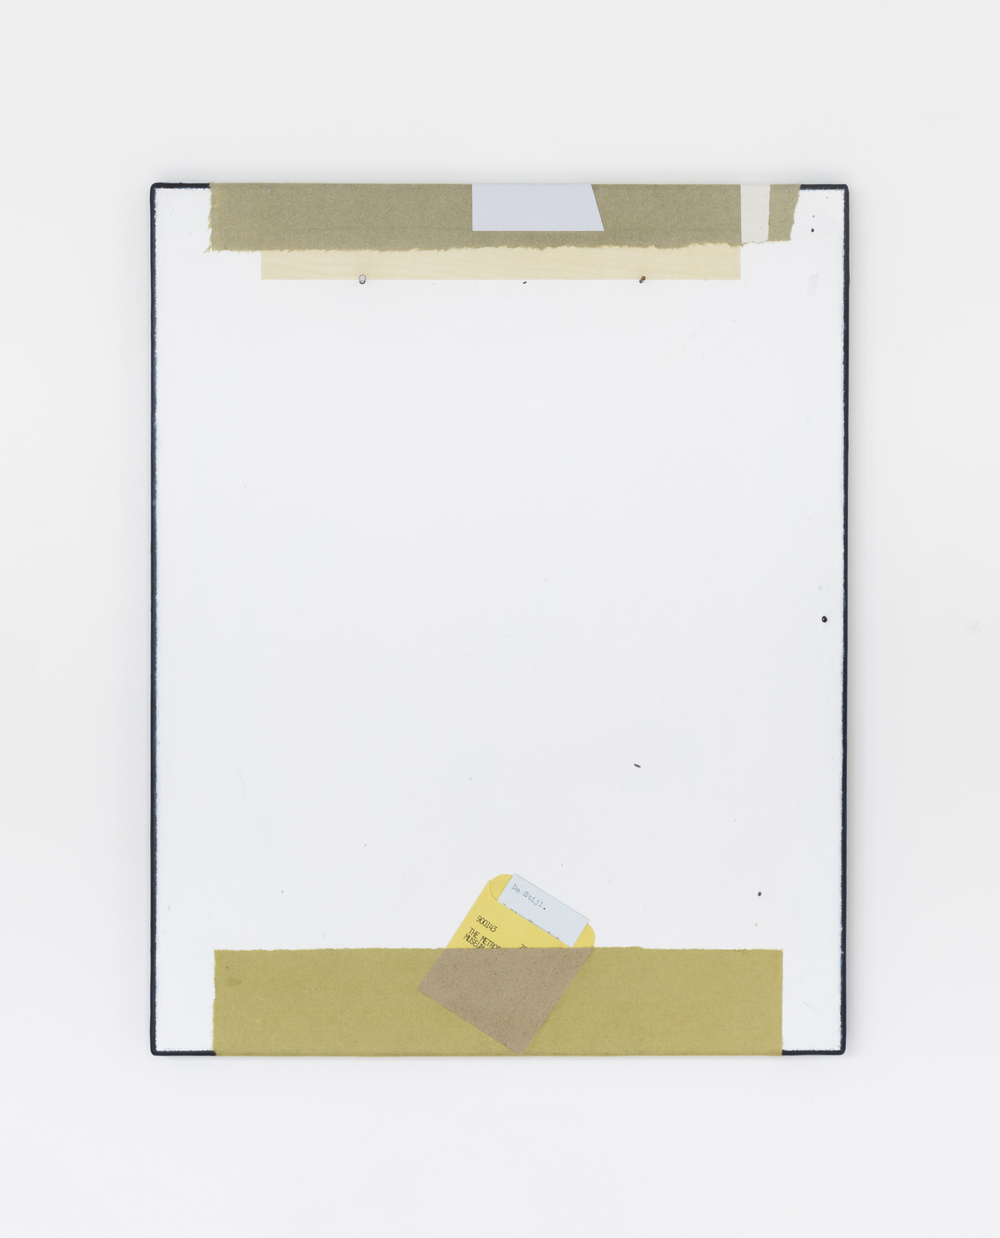 Painting No.3 2015 Awagami paper, Cole and Son wallpaper, sandpaper, wood veneer, envelope, blue card, nails, paint, linen, stretcher frame 40 x 50 cm $5000 USD